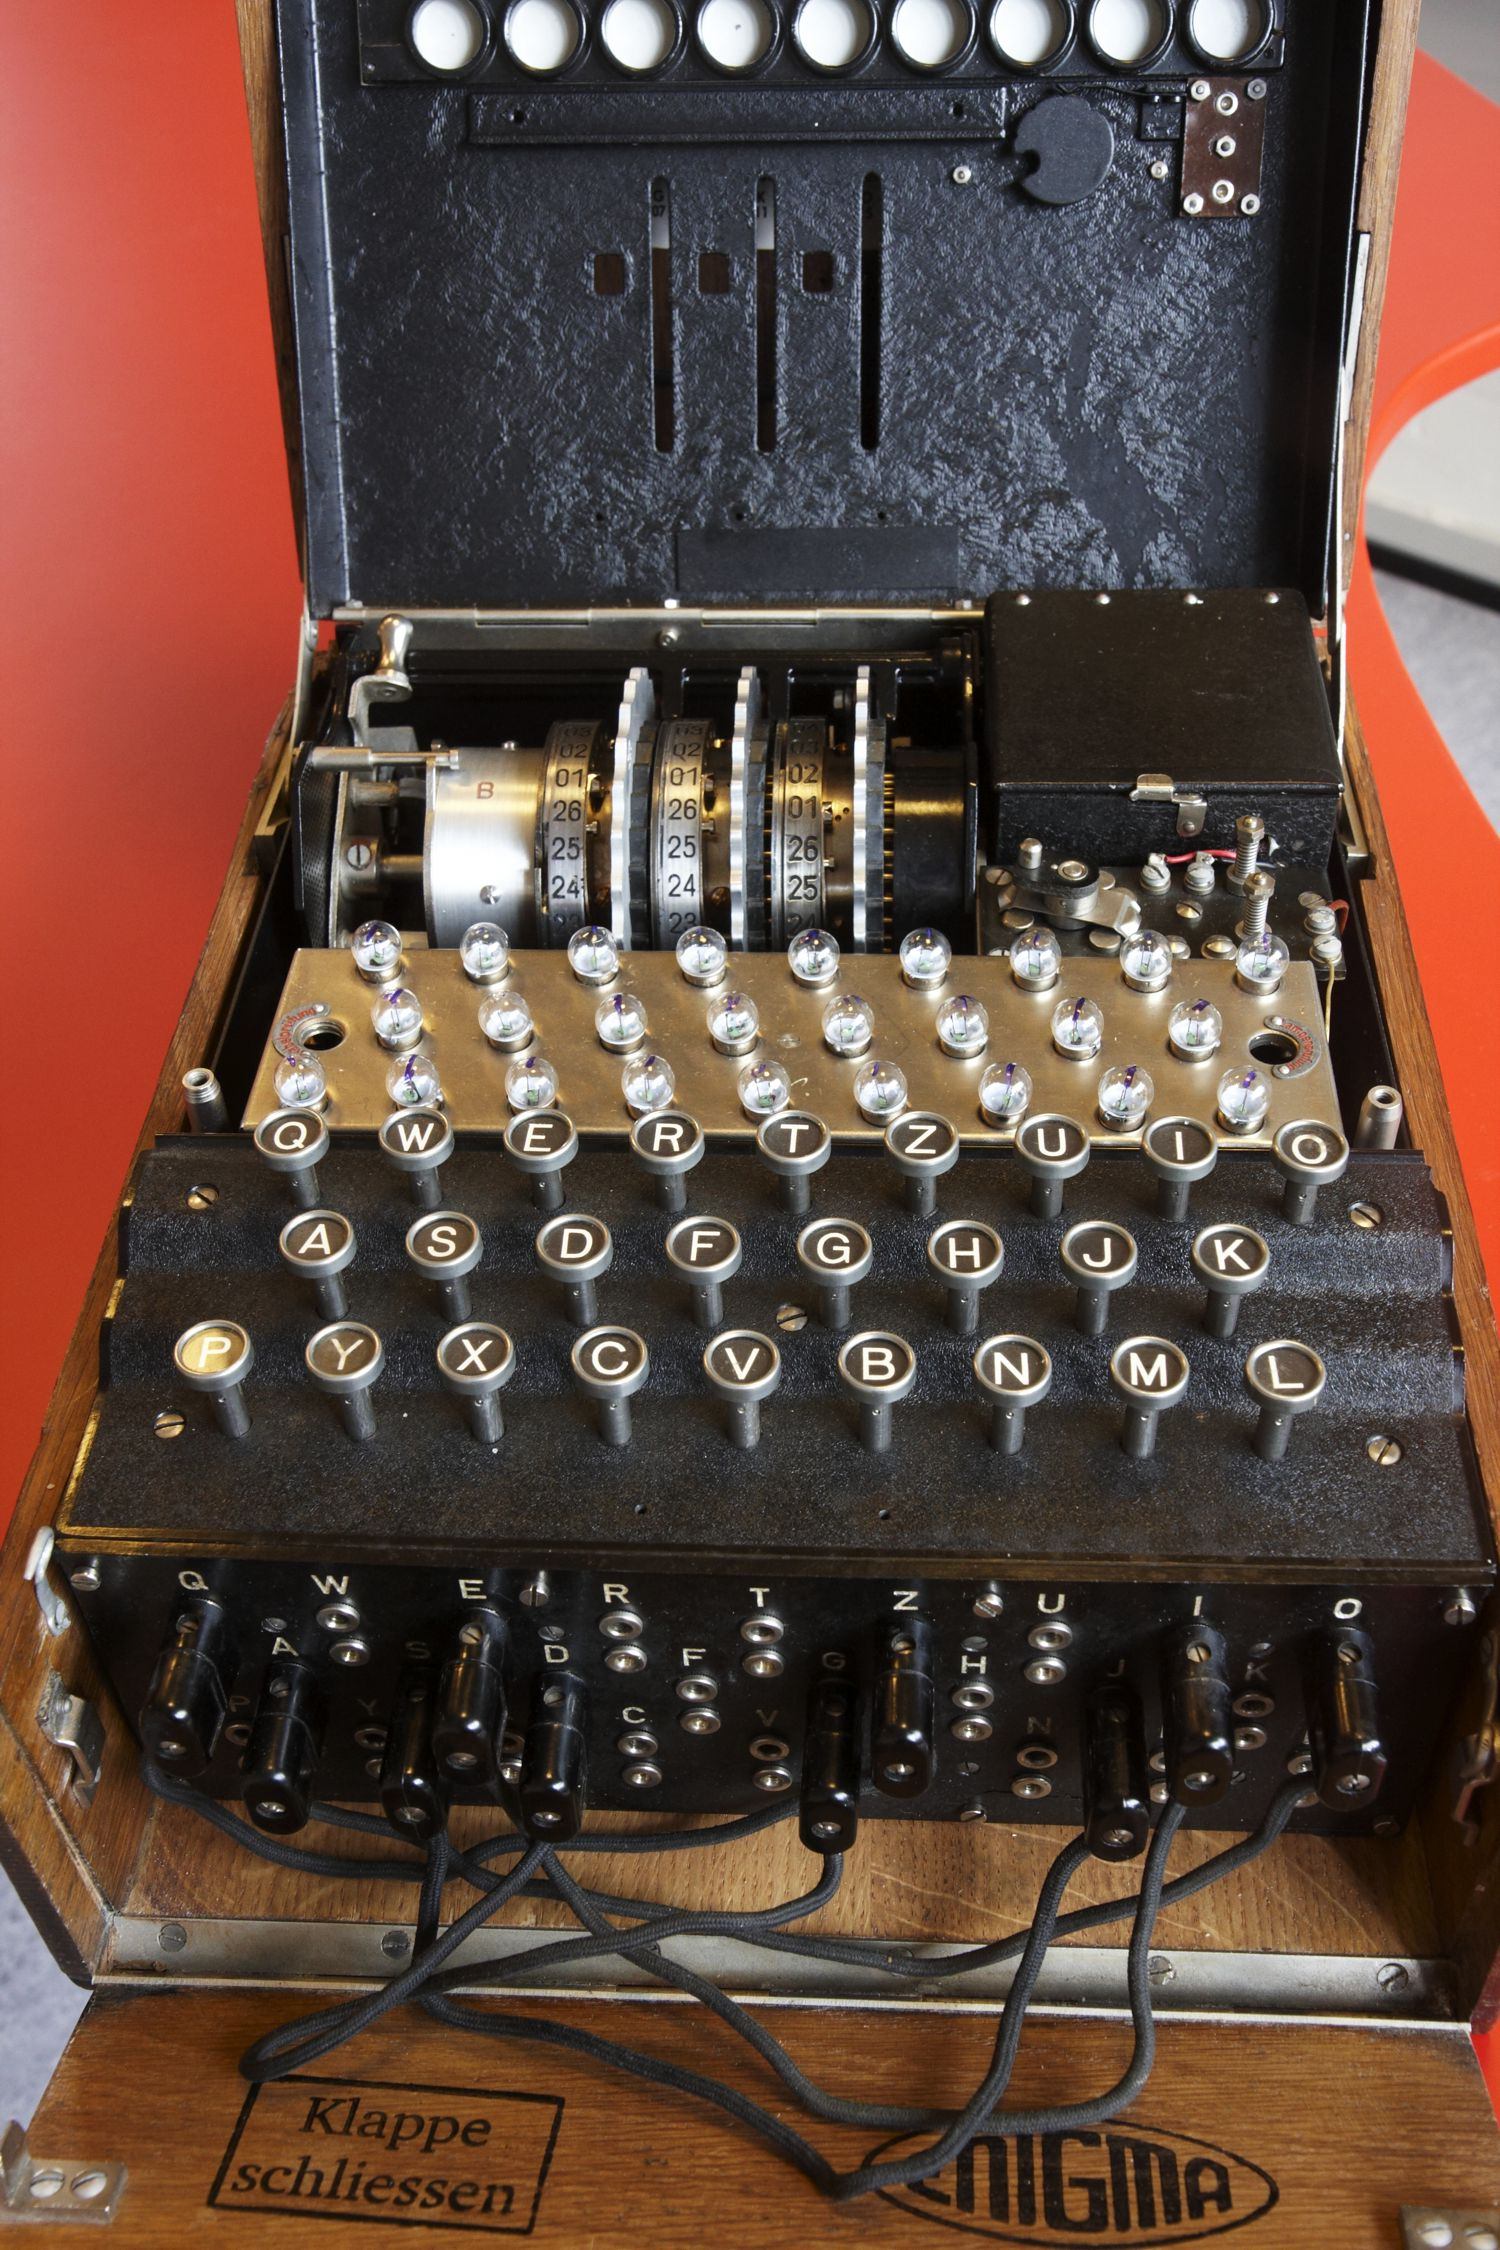 The Enigma Machine From Dtu Danmark